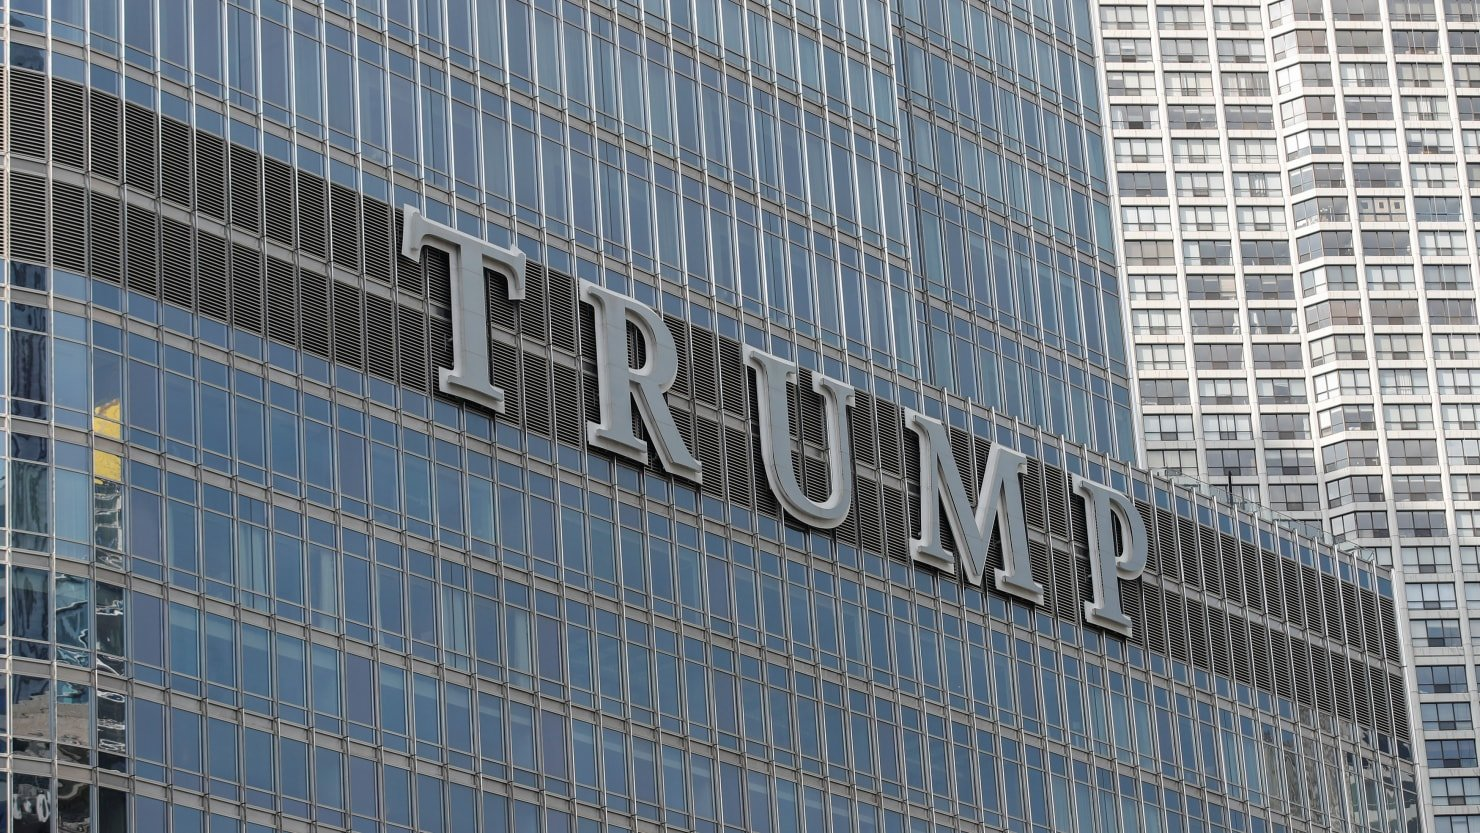 The report says banks have forgiven hundreds of millions of debt that Trump owned from a Chicago skyscraper